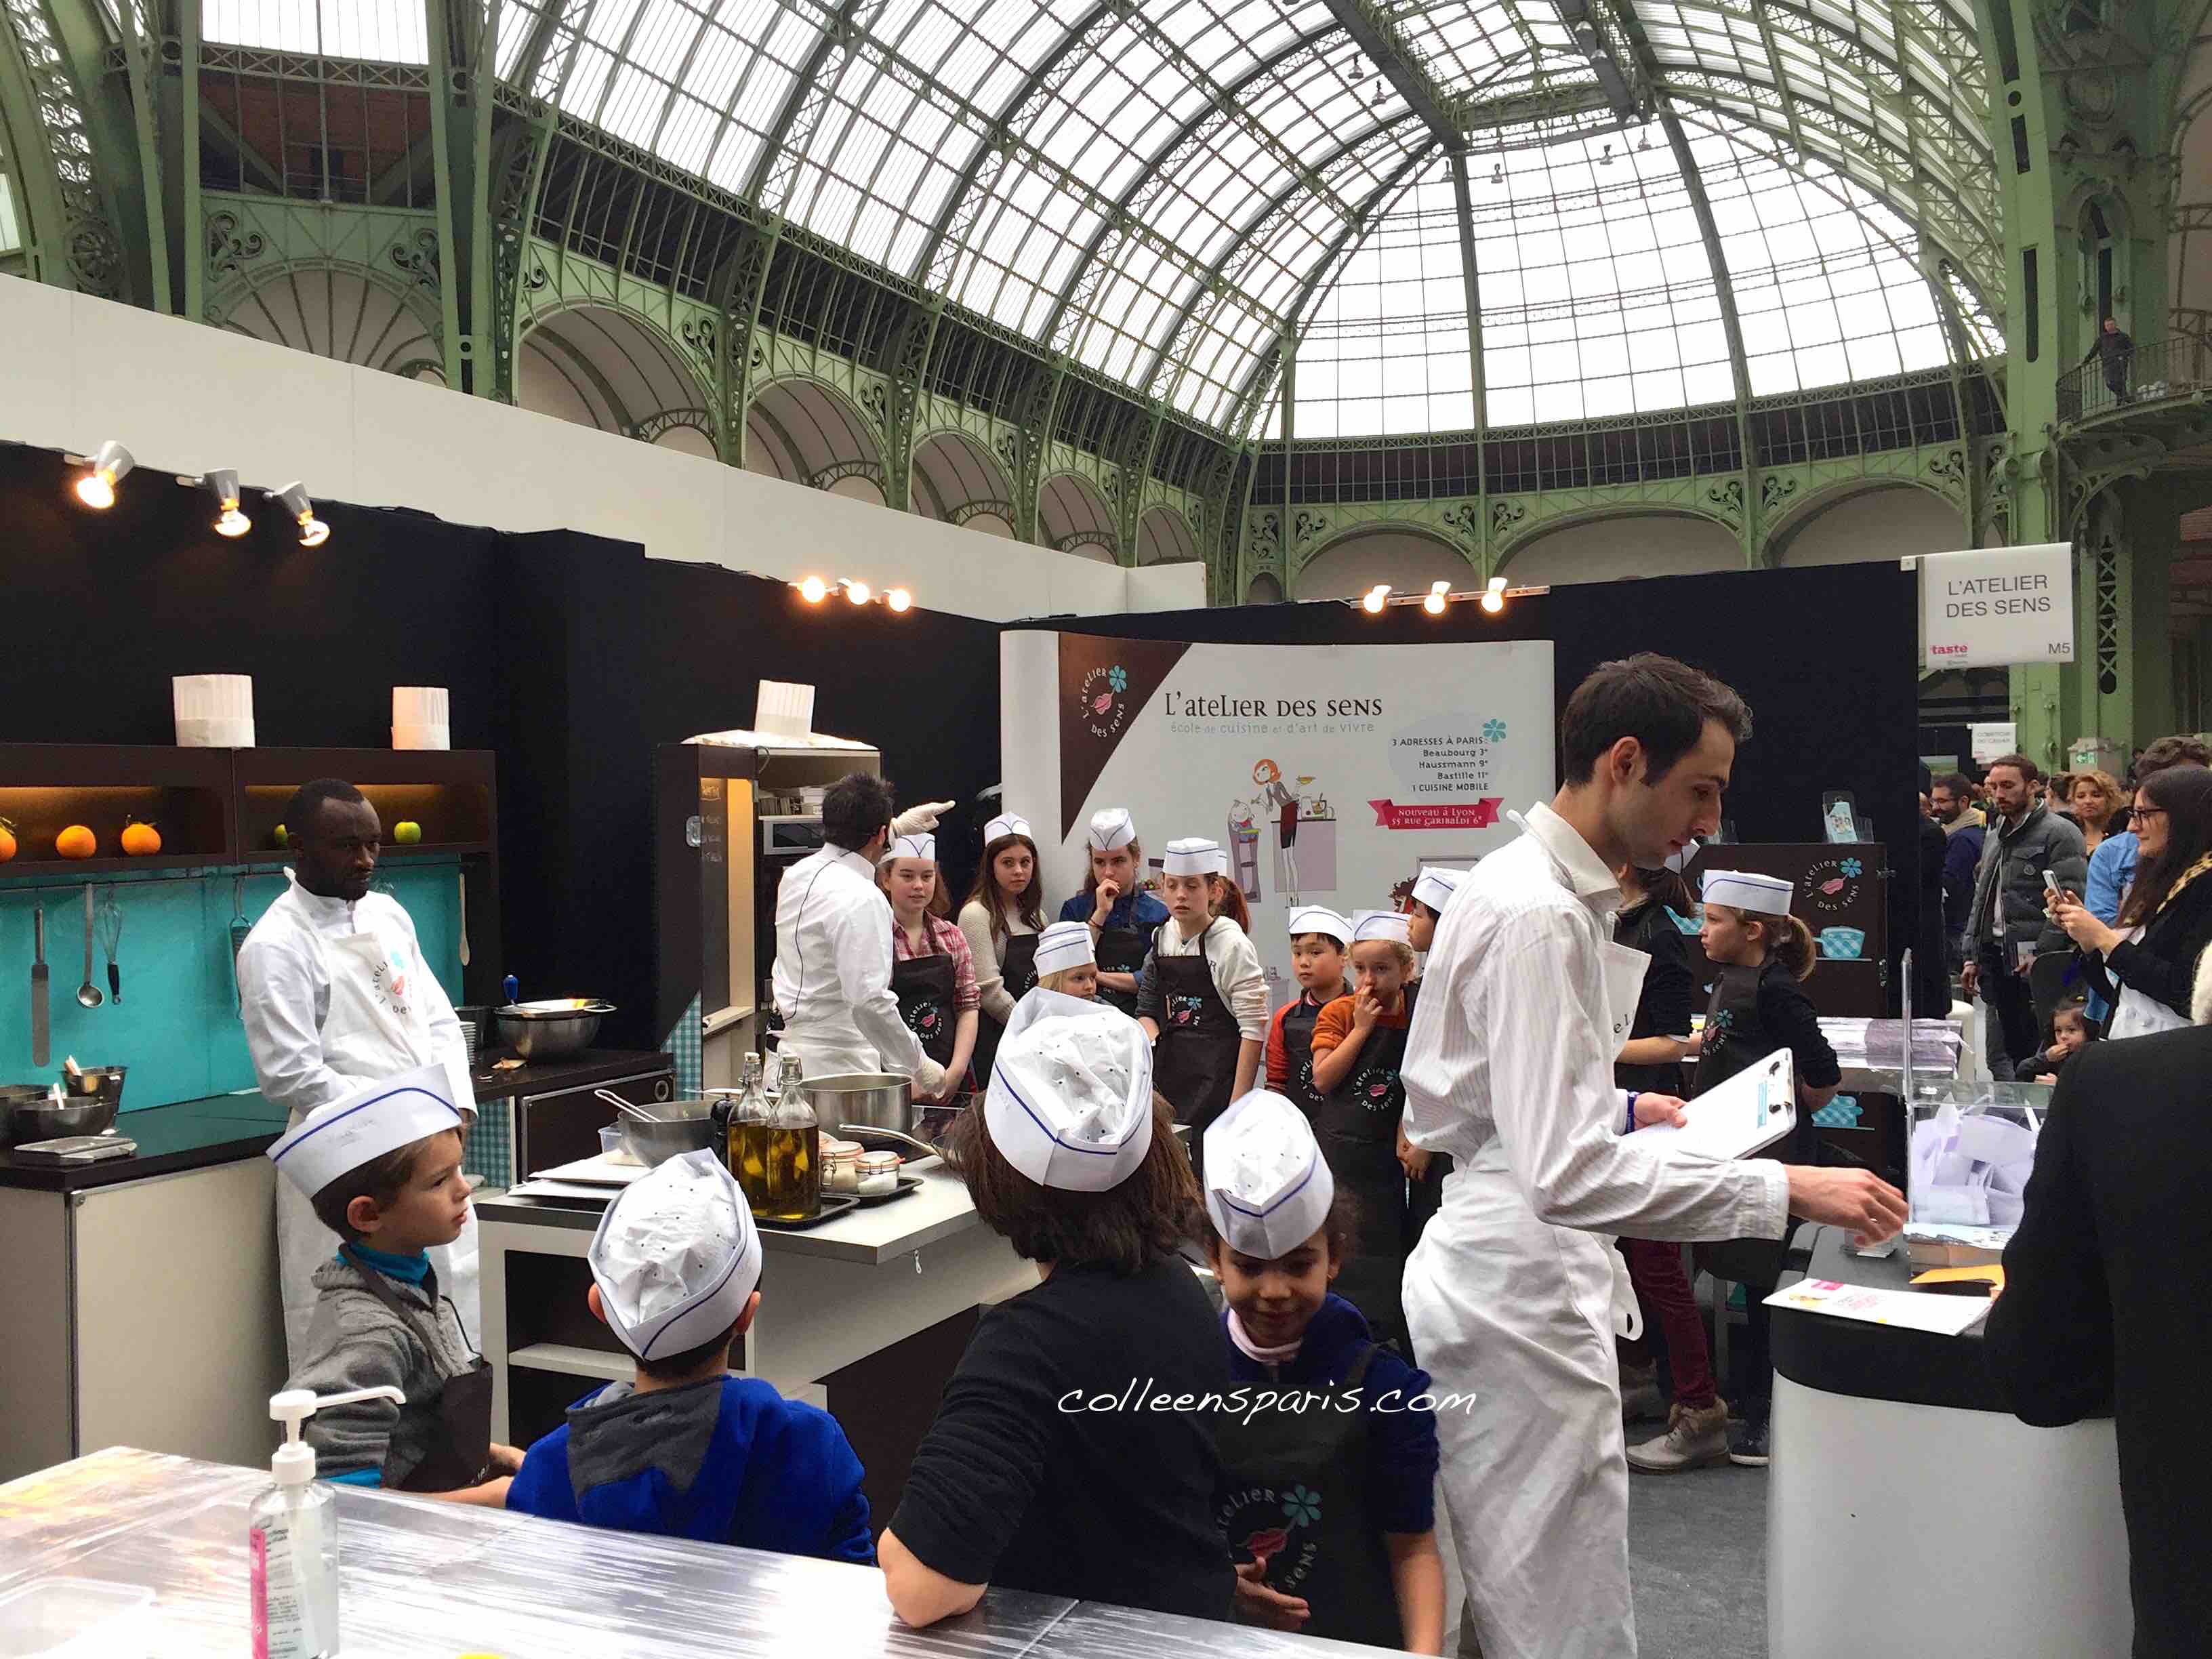 Even the kids get into the cooking class action http://paris.tastefestivals.com/animations/ Taste of Paris Grand Palais